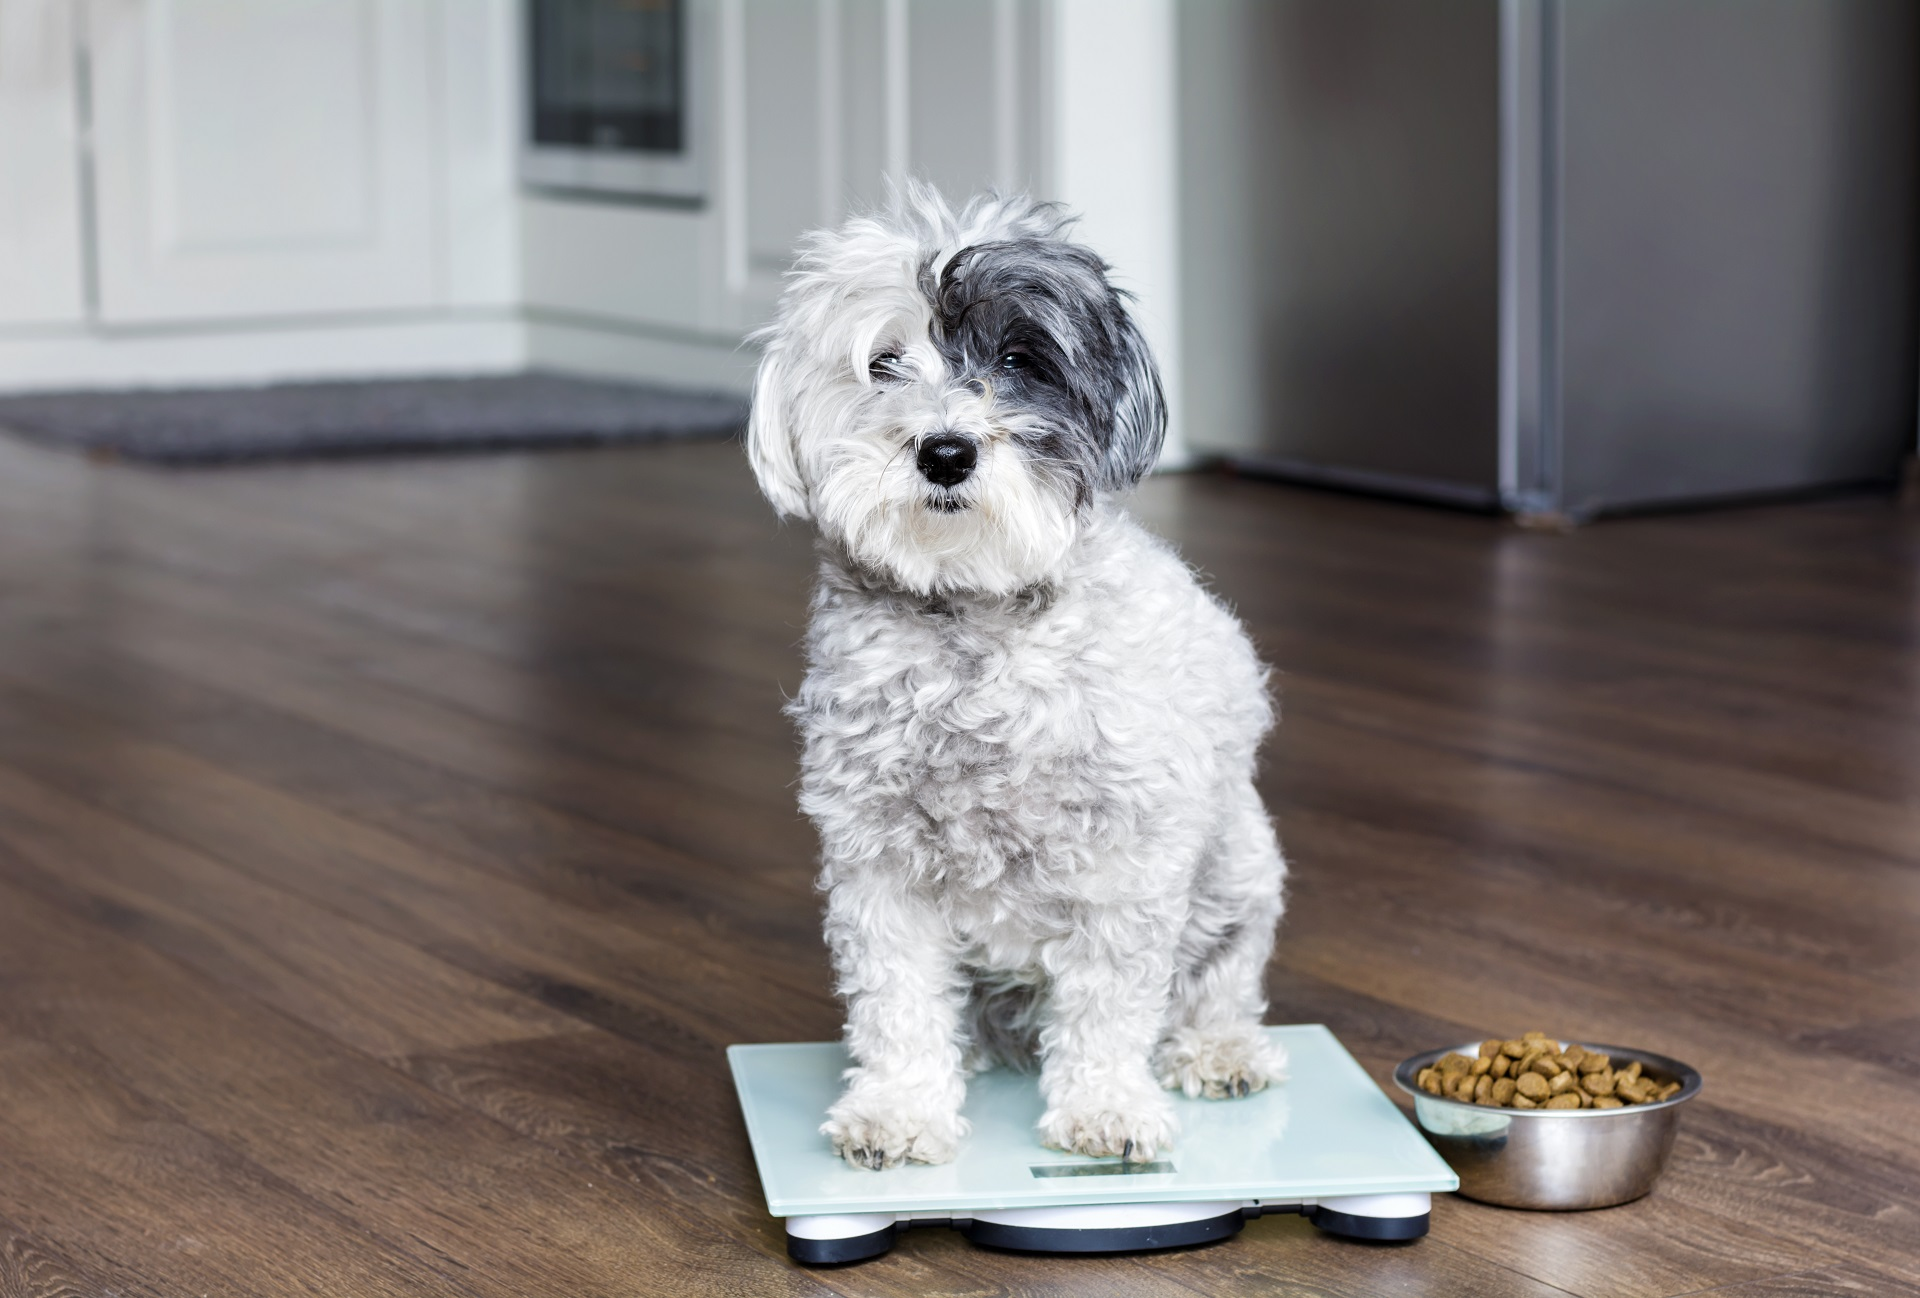 Five Steps To Managing Your Dog's Weight